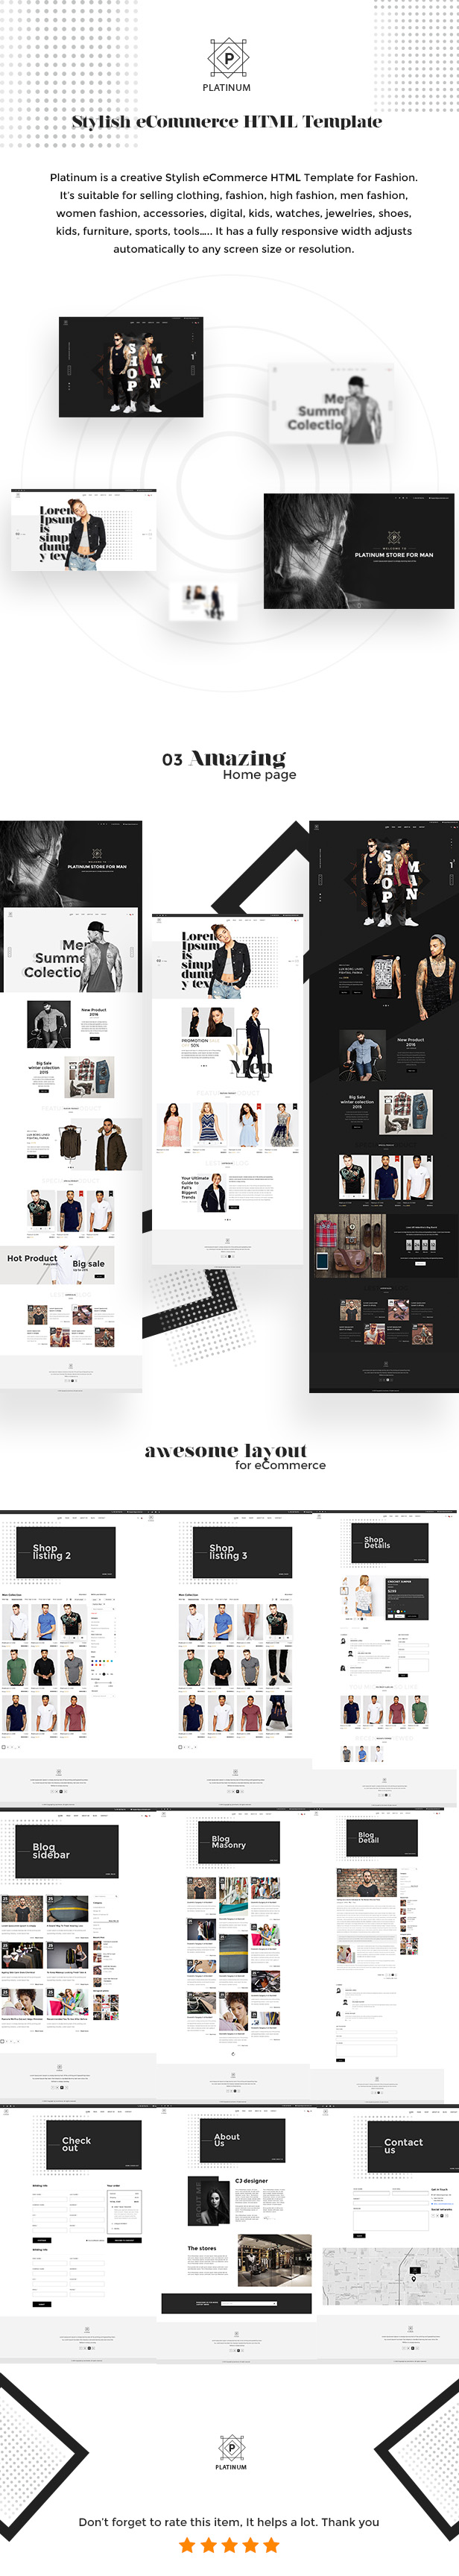 Platinum - Stylish eCommerce HTML Template for Fashion by weThemez on upload design, interactive experience design, dvb design, ms word design, datagrid design, mets design, simple text design, openoffice design, pie graph design, cvs design, spot color design, company branding design, civil 3d design, datatable design, theming design, potoshop design, web design, interactive website design, page banner design, blockquote design,